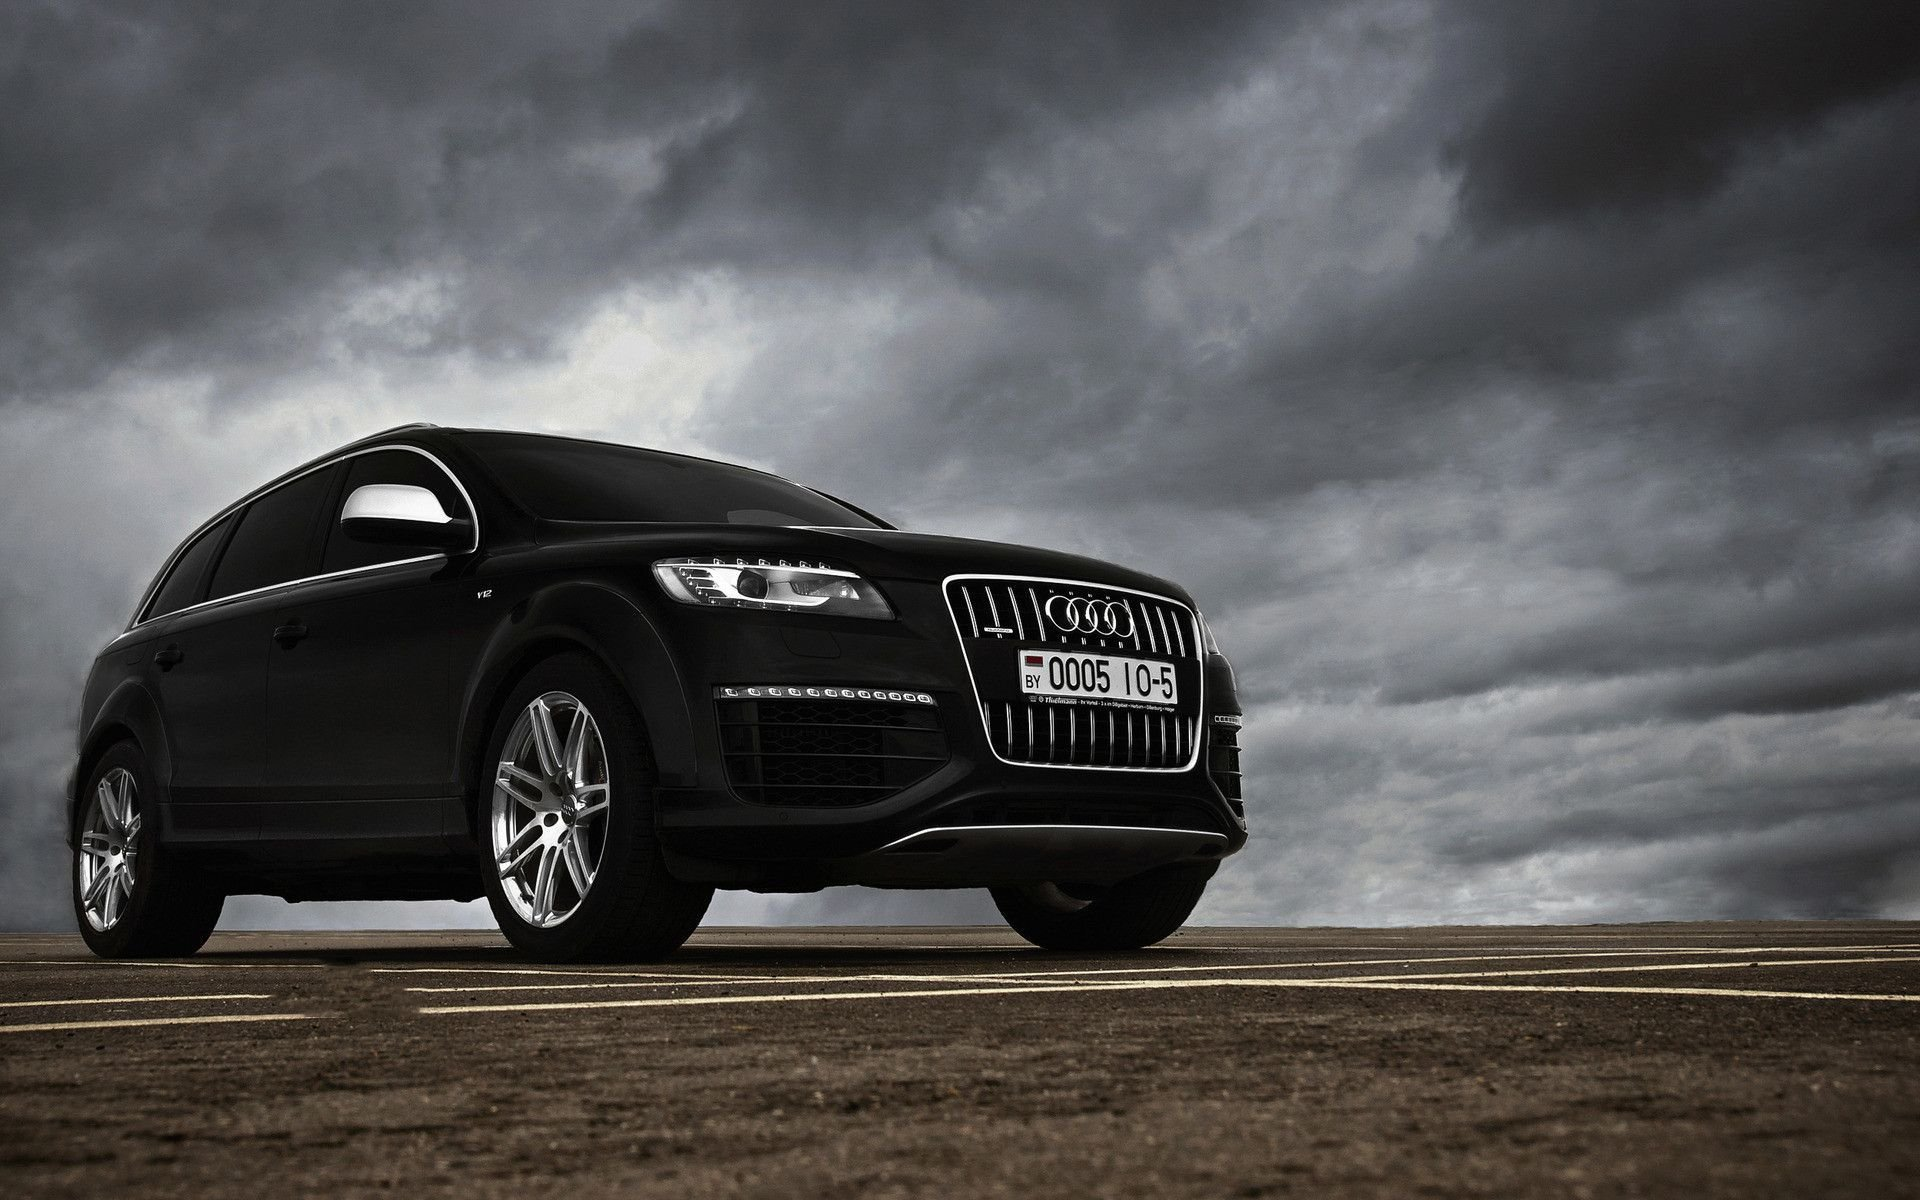 Latest Audi Q7 Wallpapers Wallpaper Cave Free Download